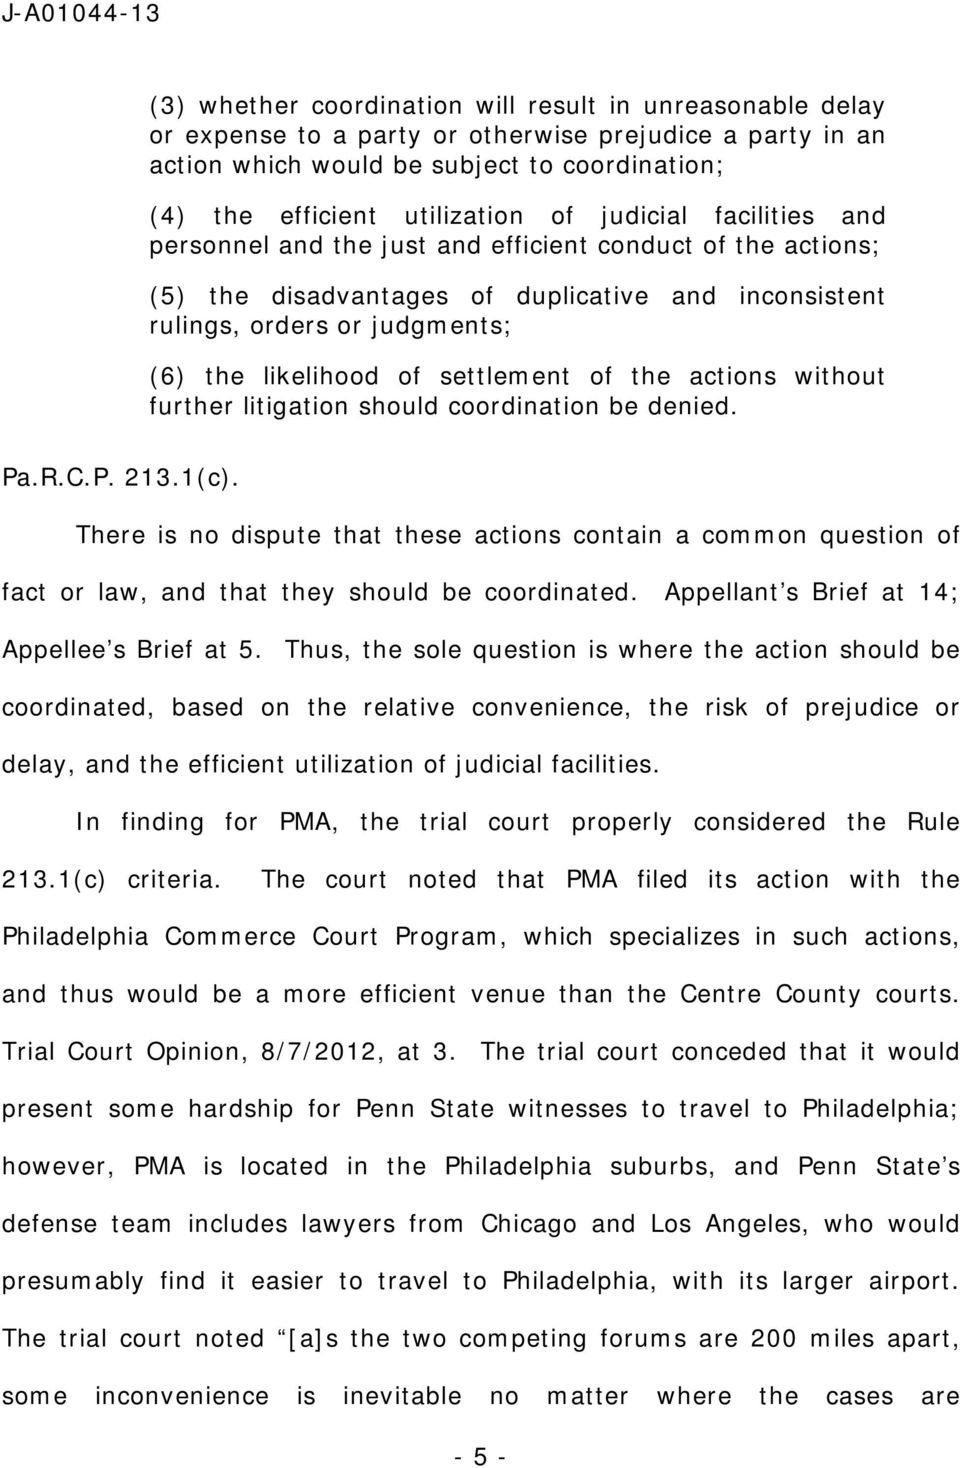 settlement of the actions without further litigation should coordination be denied. Pa.R.C.P. 213.1(c).